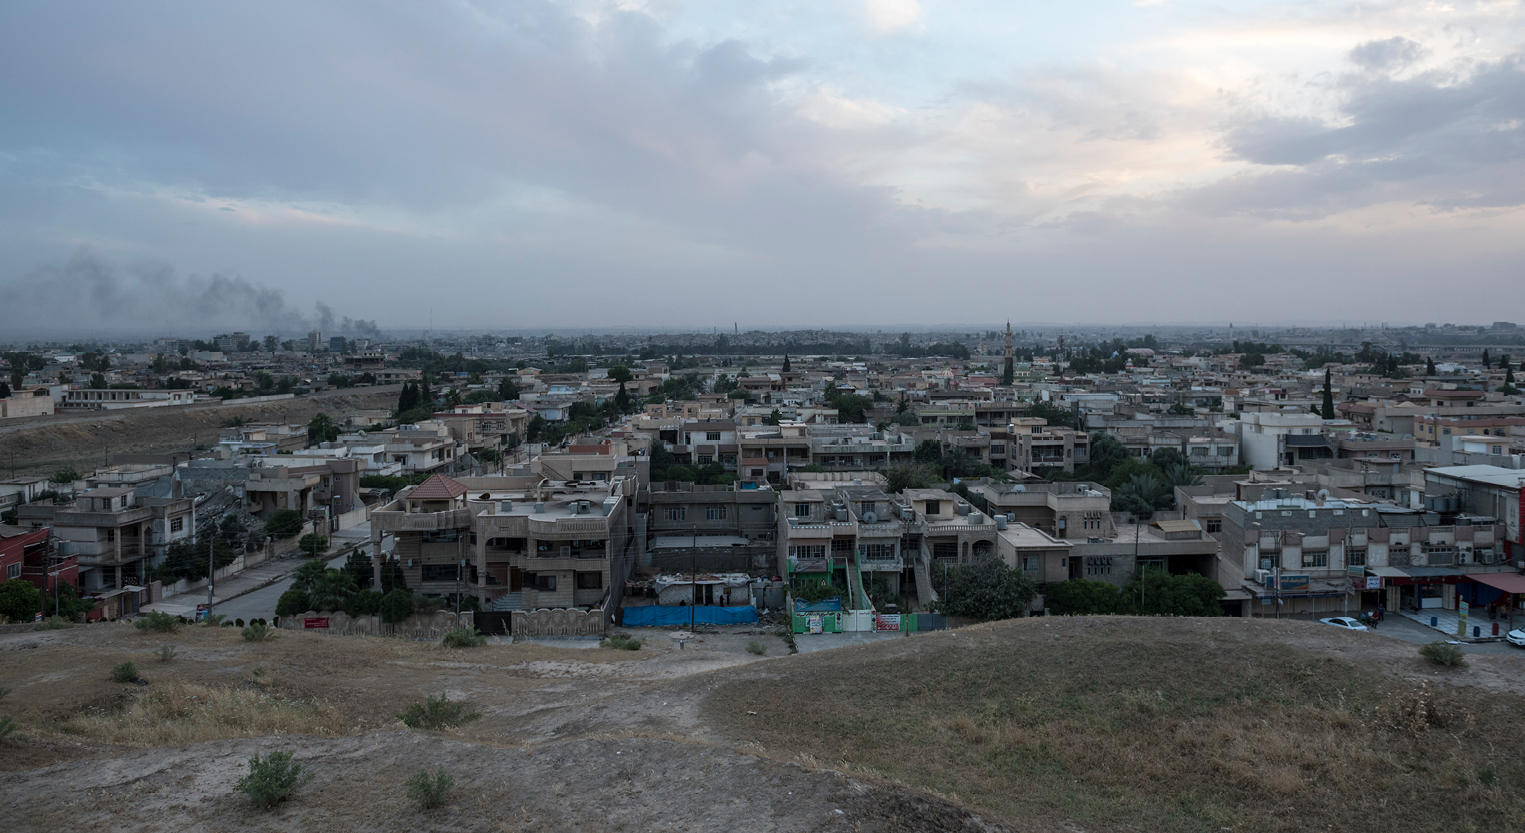 Yazidi city shot